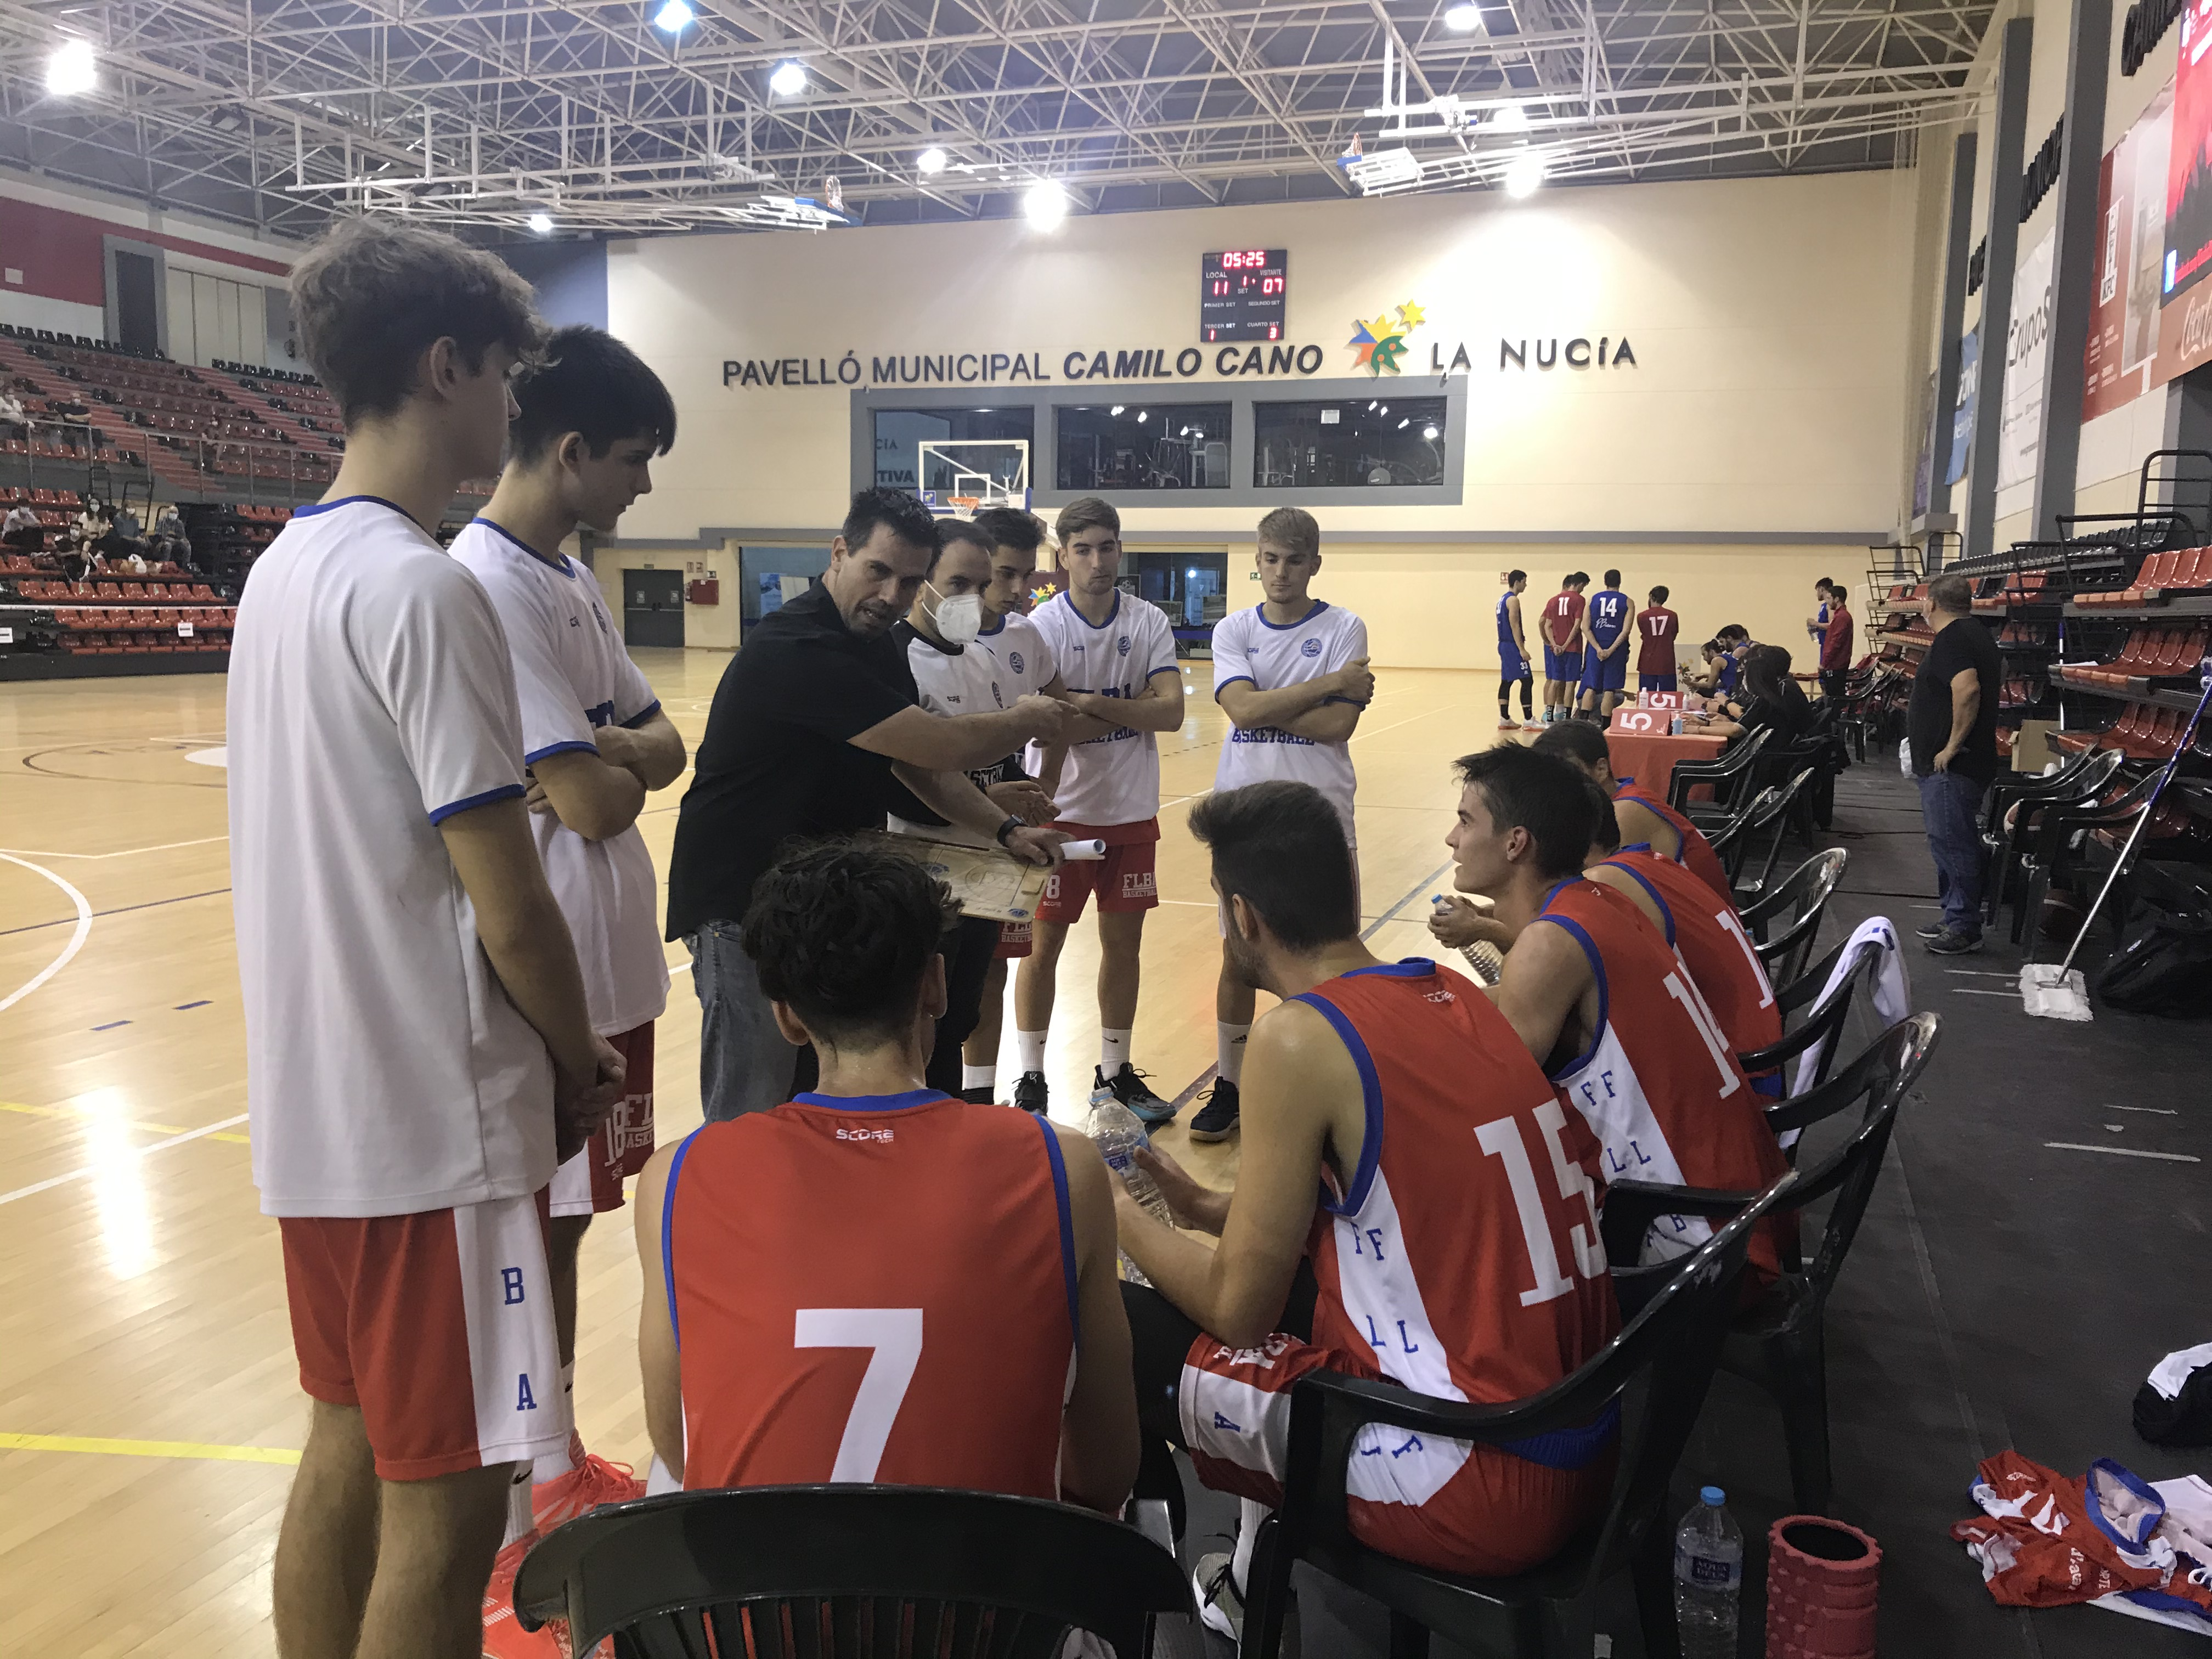 La Nucia UA Basket vs Tavernes oct 2 2020